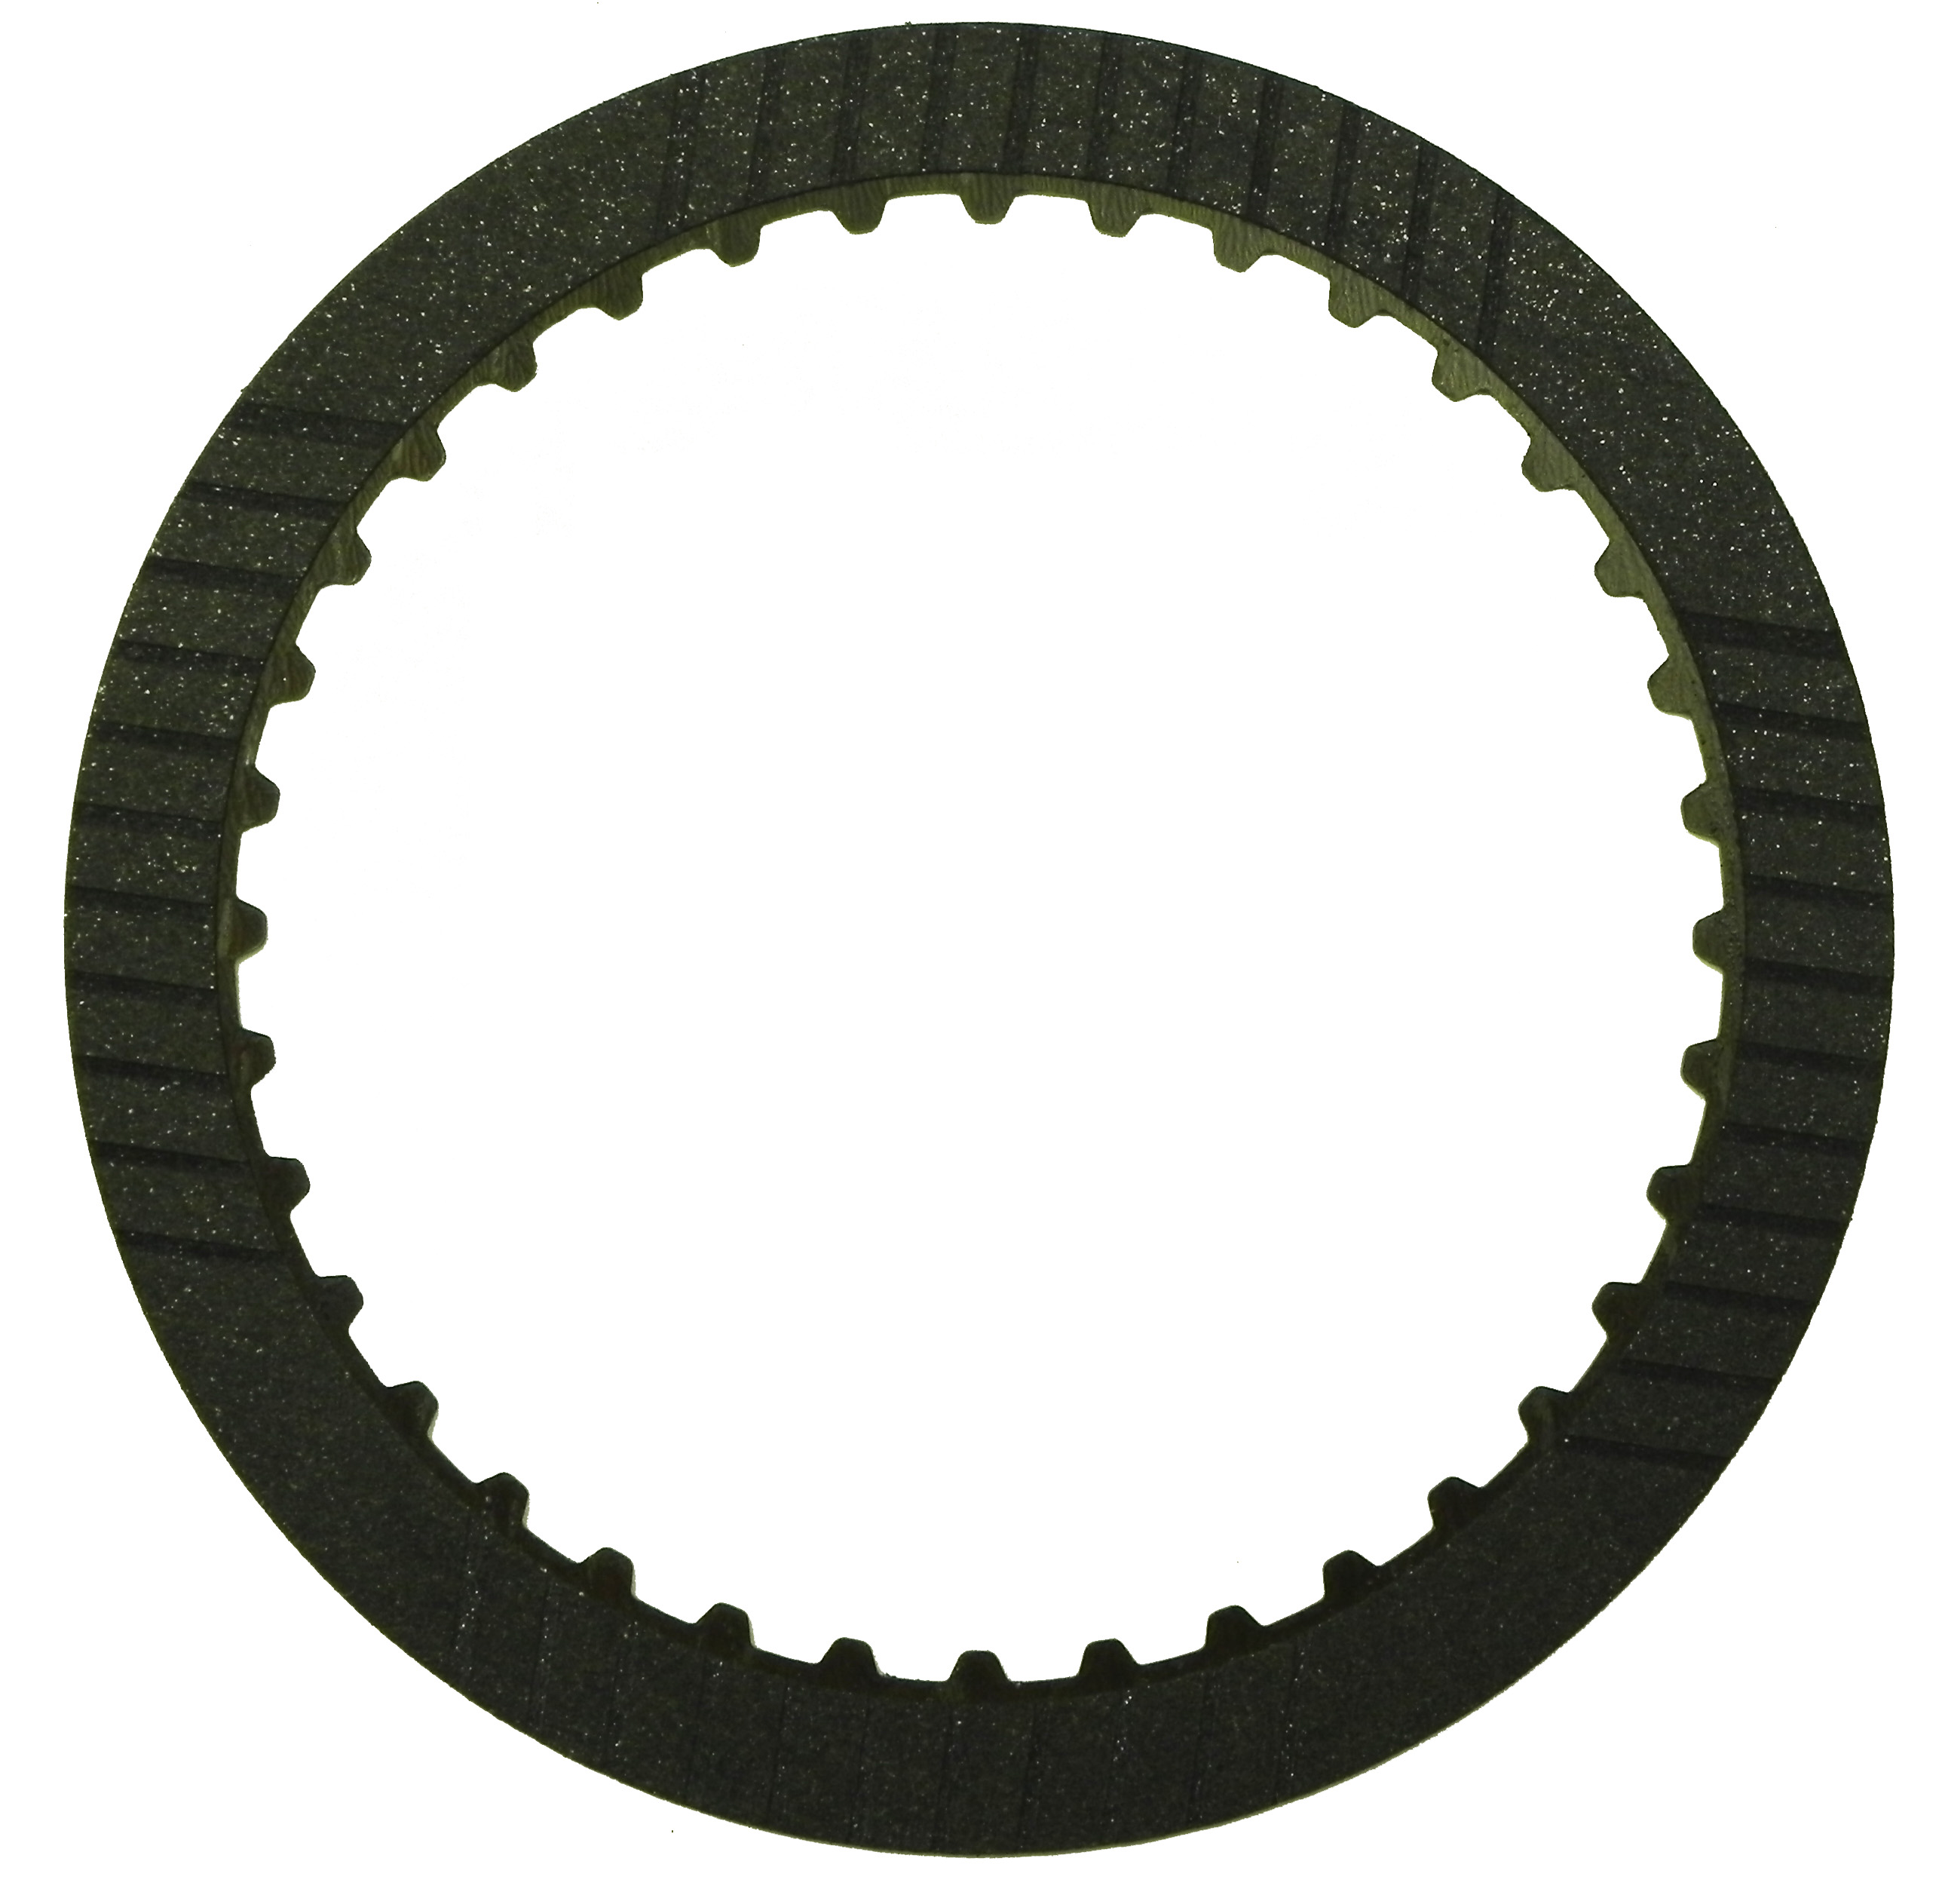 R558550 | 2007-ON Friction Clutch Plate High Energy 4th, 5th, 6th, Single Sided, ID Spline High Energy